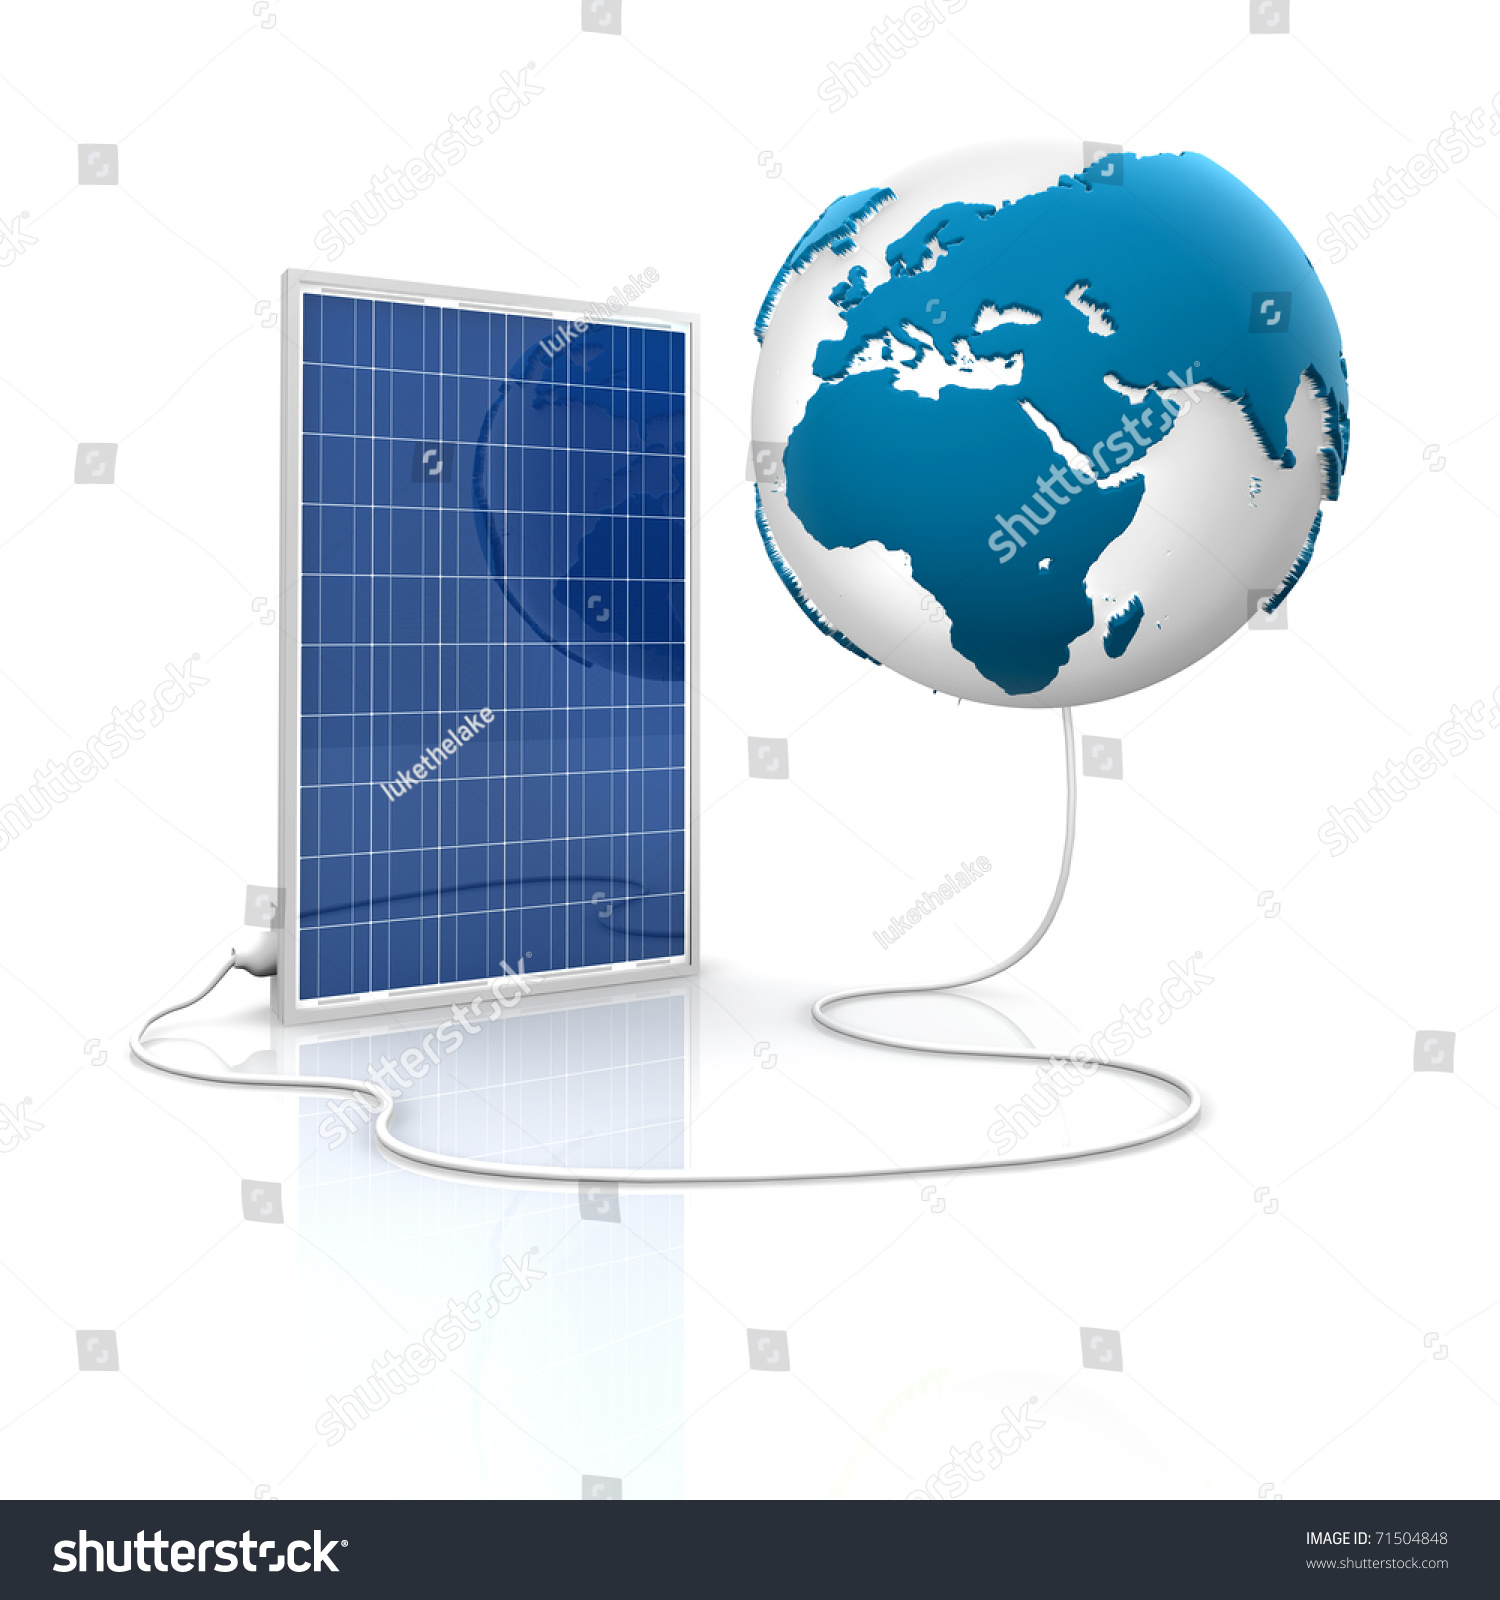 save the world essay how can we save the earth essay essay help  stock photo solar panel for green and renewable energy save the world photovoltaic and alternative energy